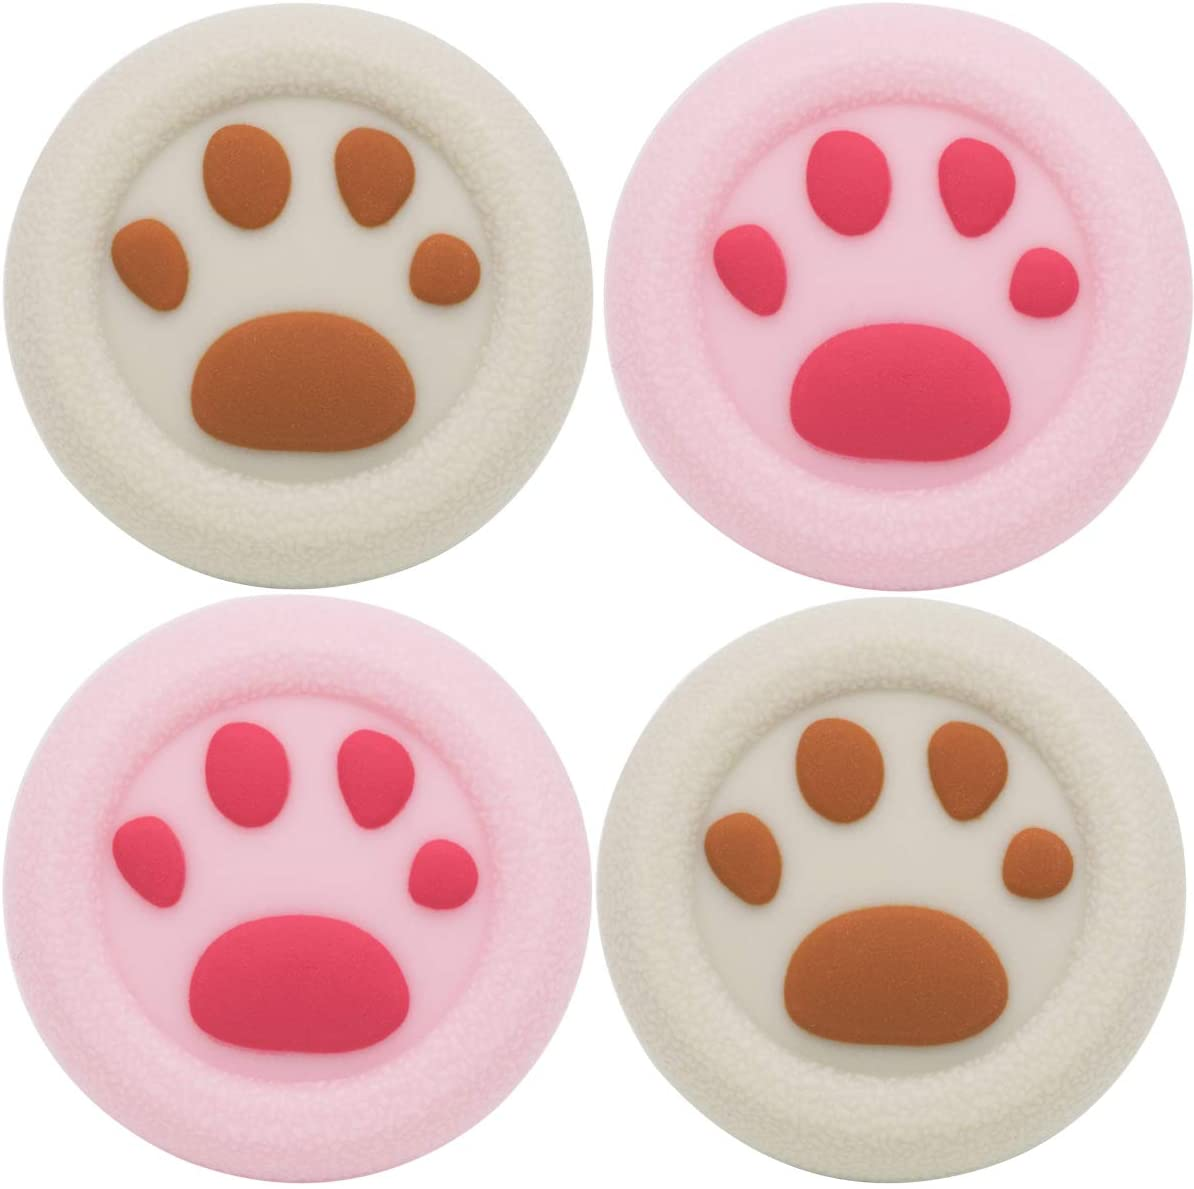 Playrealm Soft Rubber Silicone 3D Texture Thumb Grip Cover x 4 for PS4, Xbox One, Switch PRO Controller (Cat Paw Coral Brown)